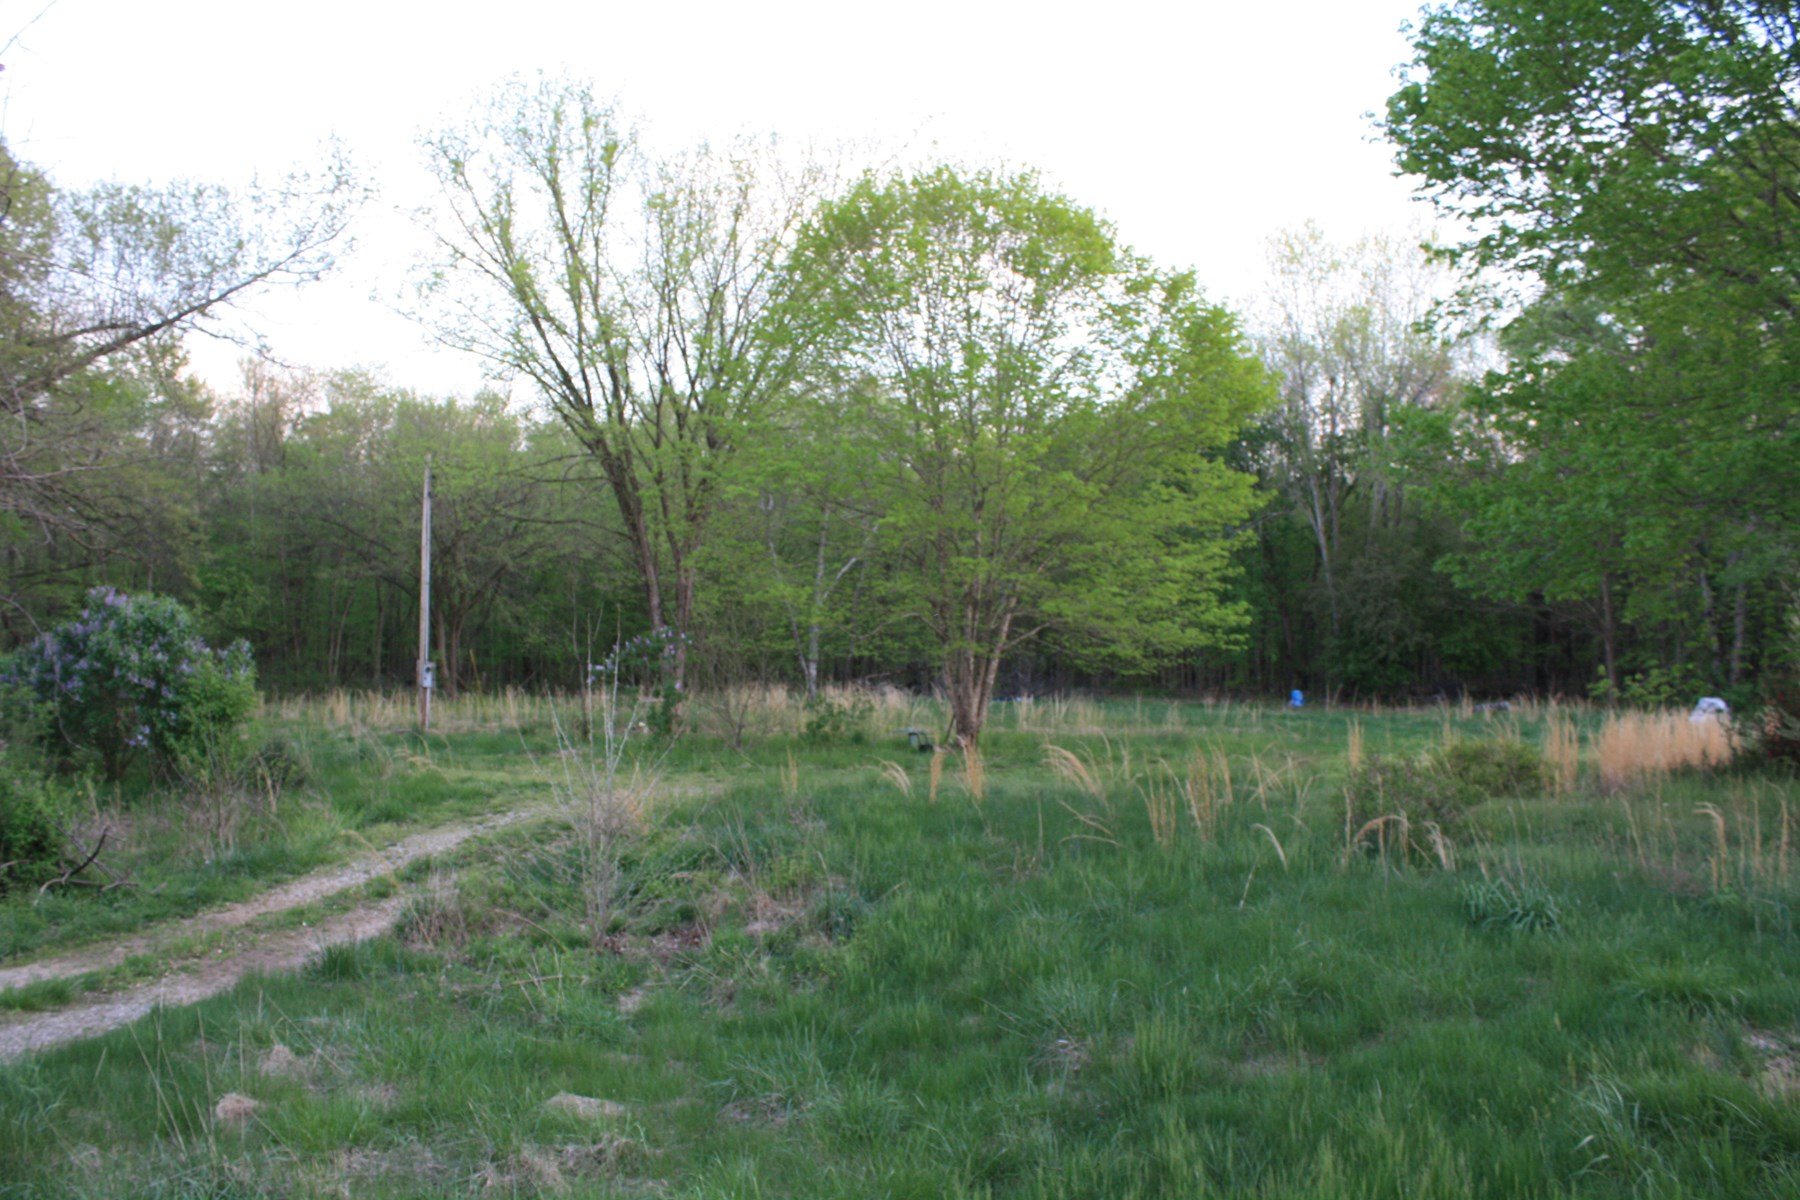 Wayne County Missouri Land for sale 1 acre home site